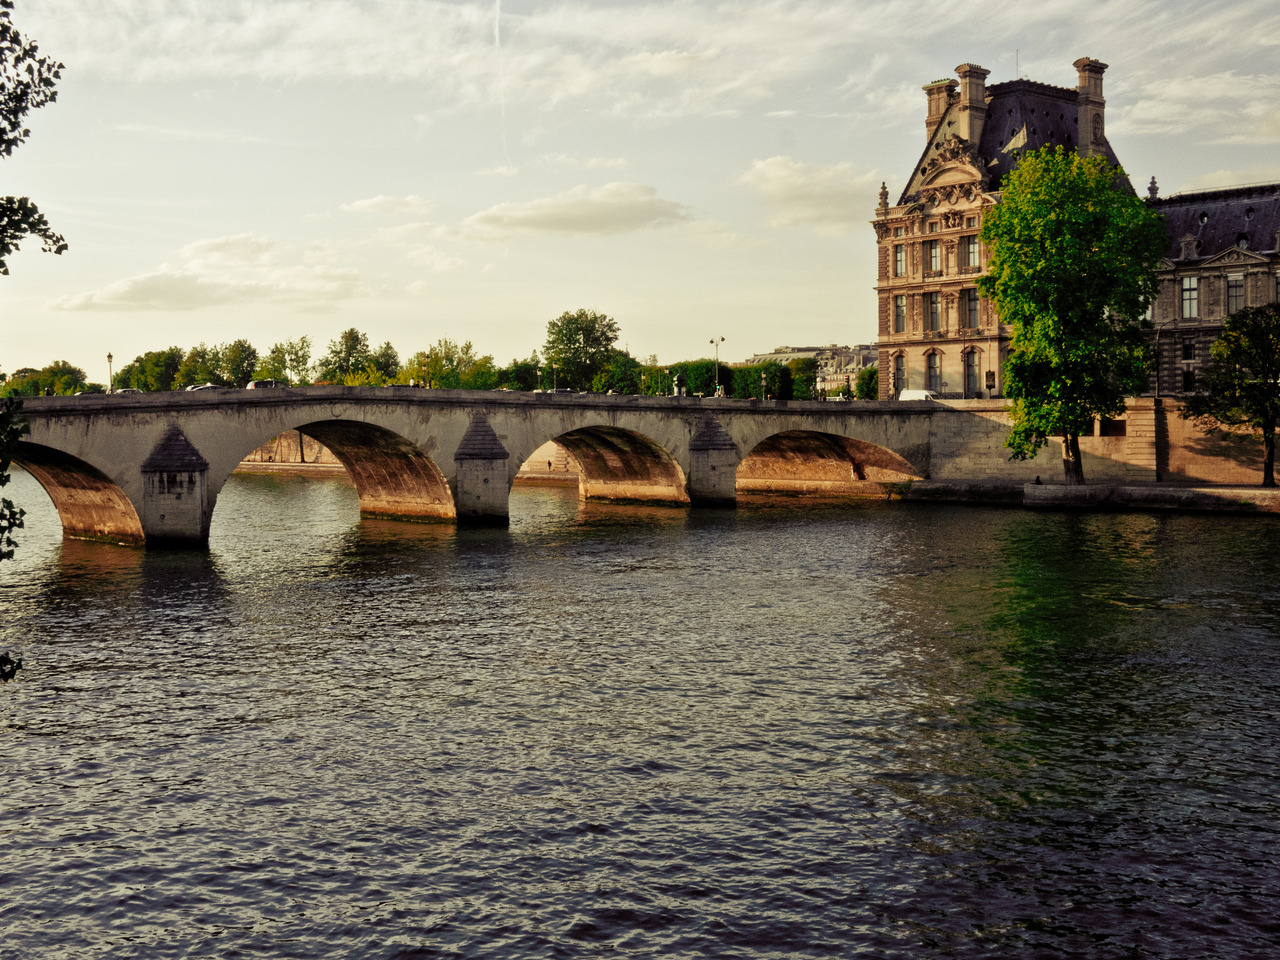 nikosaragon:  Sunset on the Seine. Pont Royal, Paris.